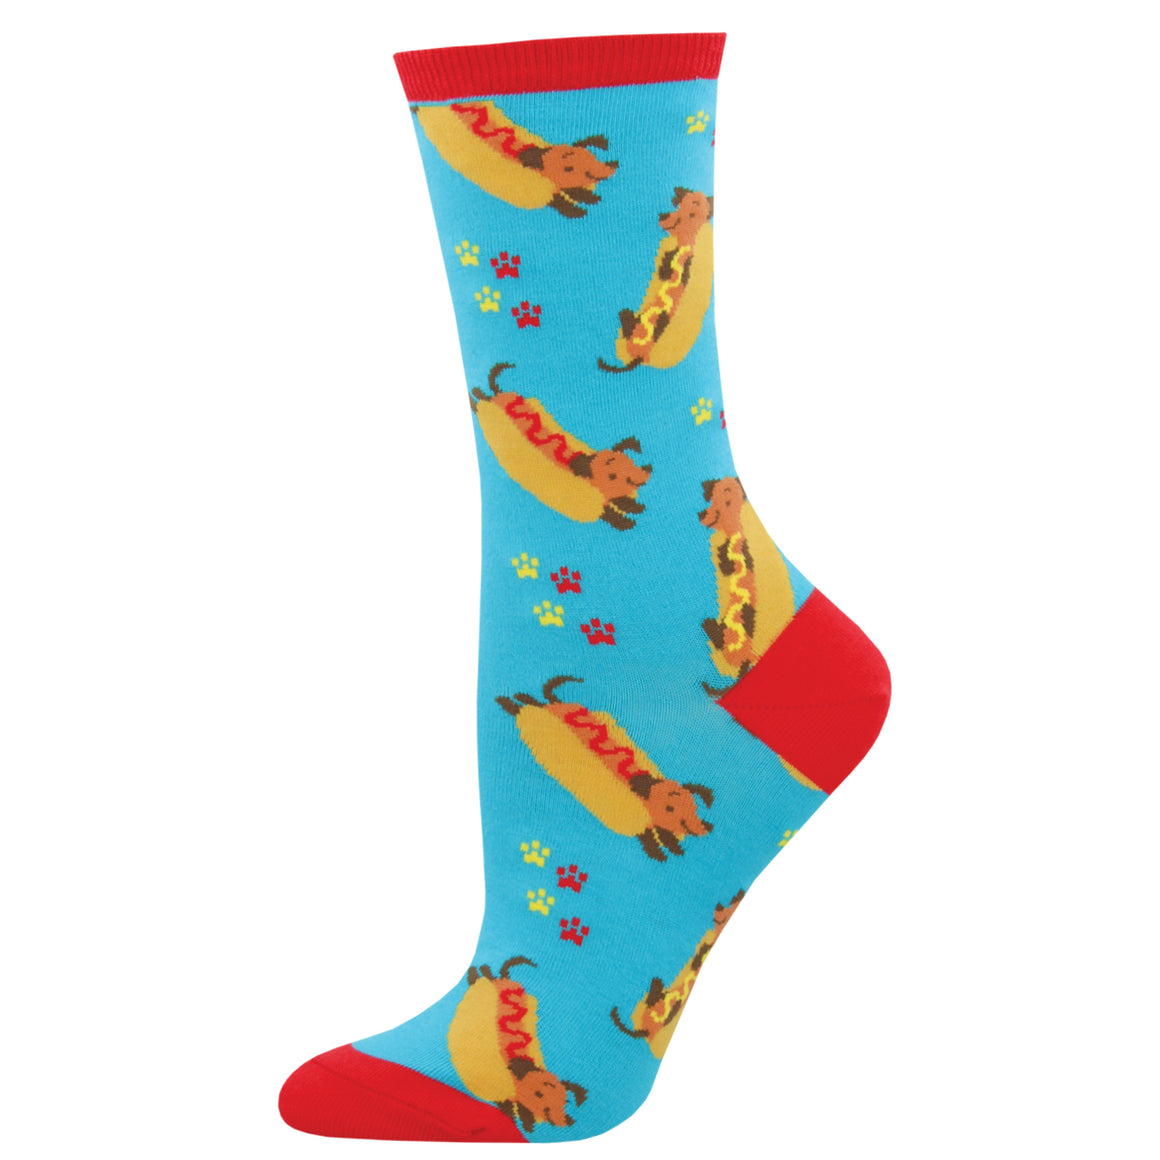 Ketchup and mustard complete these hot dog dachshund socks for women.